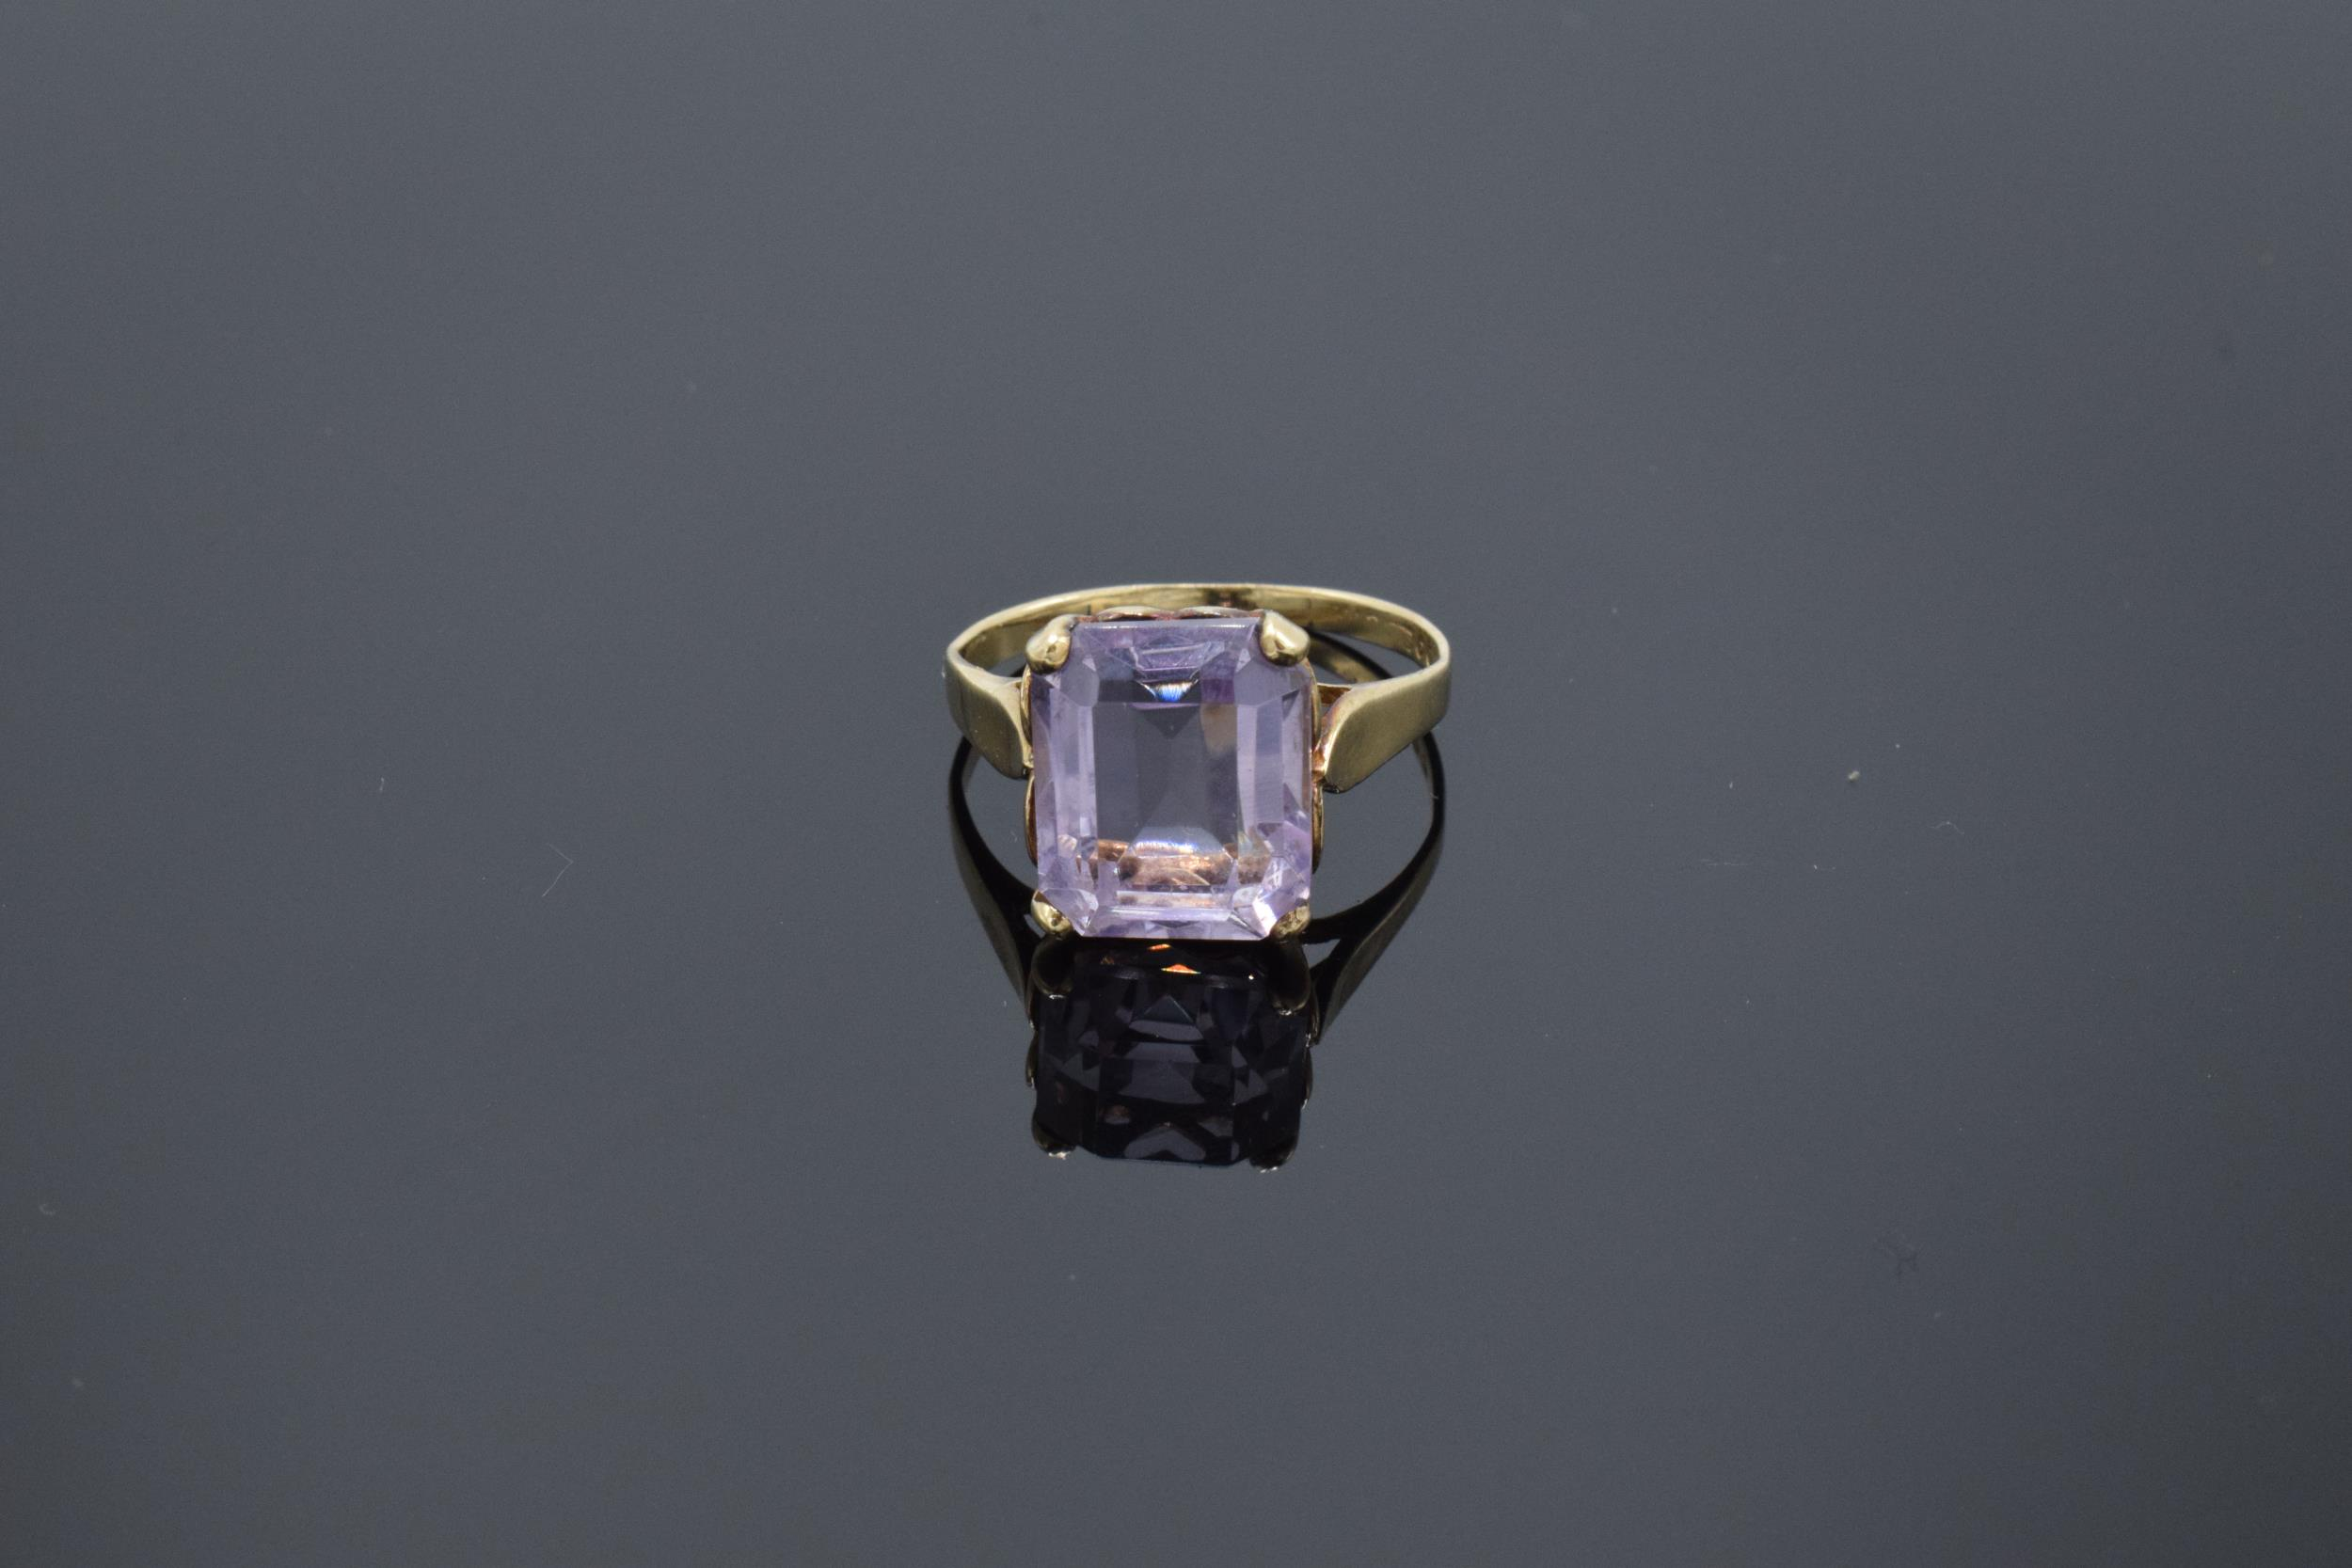 9ct gold ladies ring set with a large amethyst stone. 3.1 grams. UK size O/P. Hallmarks slightly - Image 2 of 4